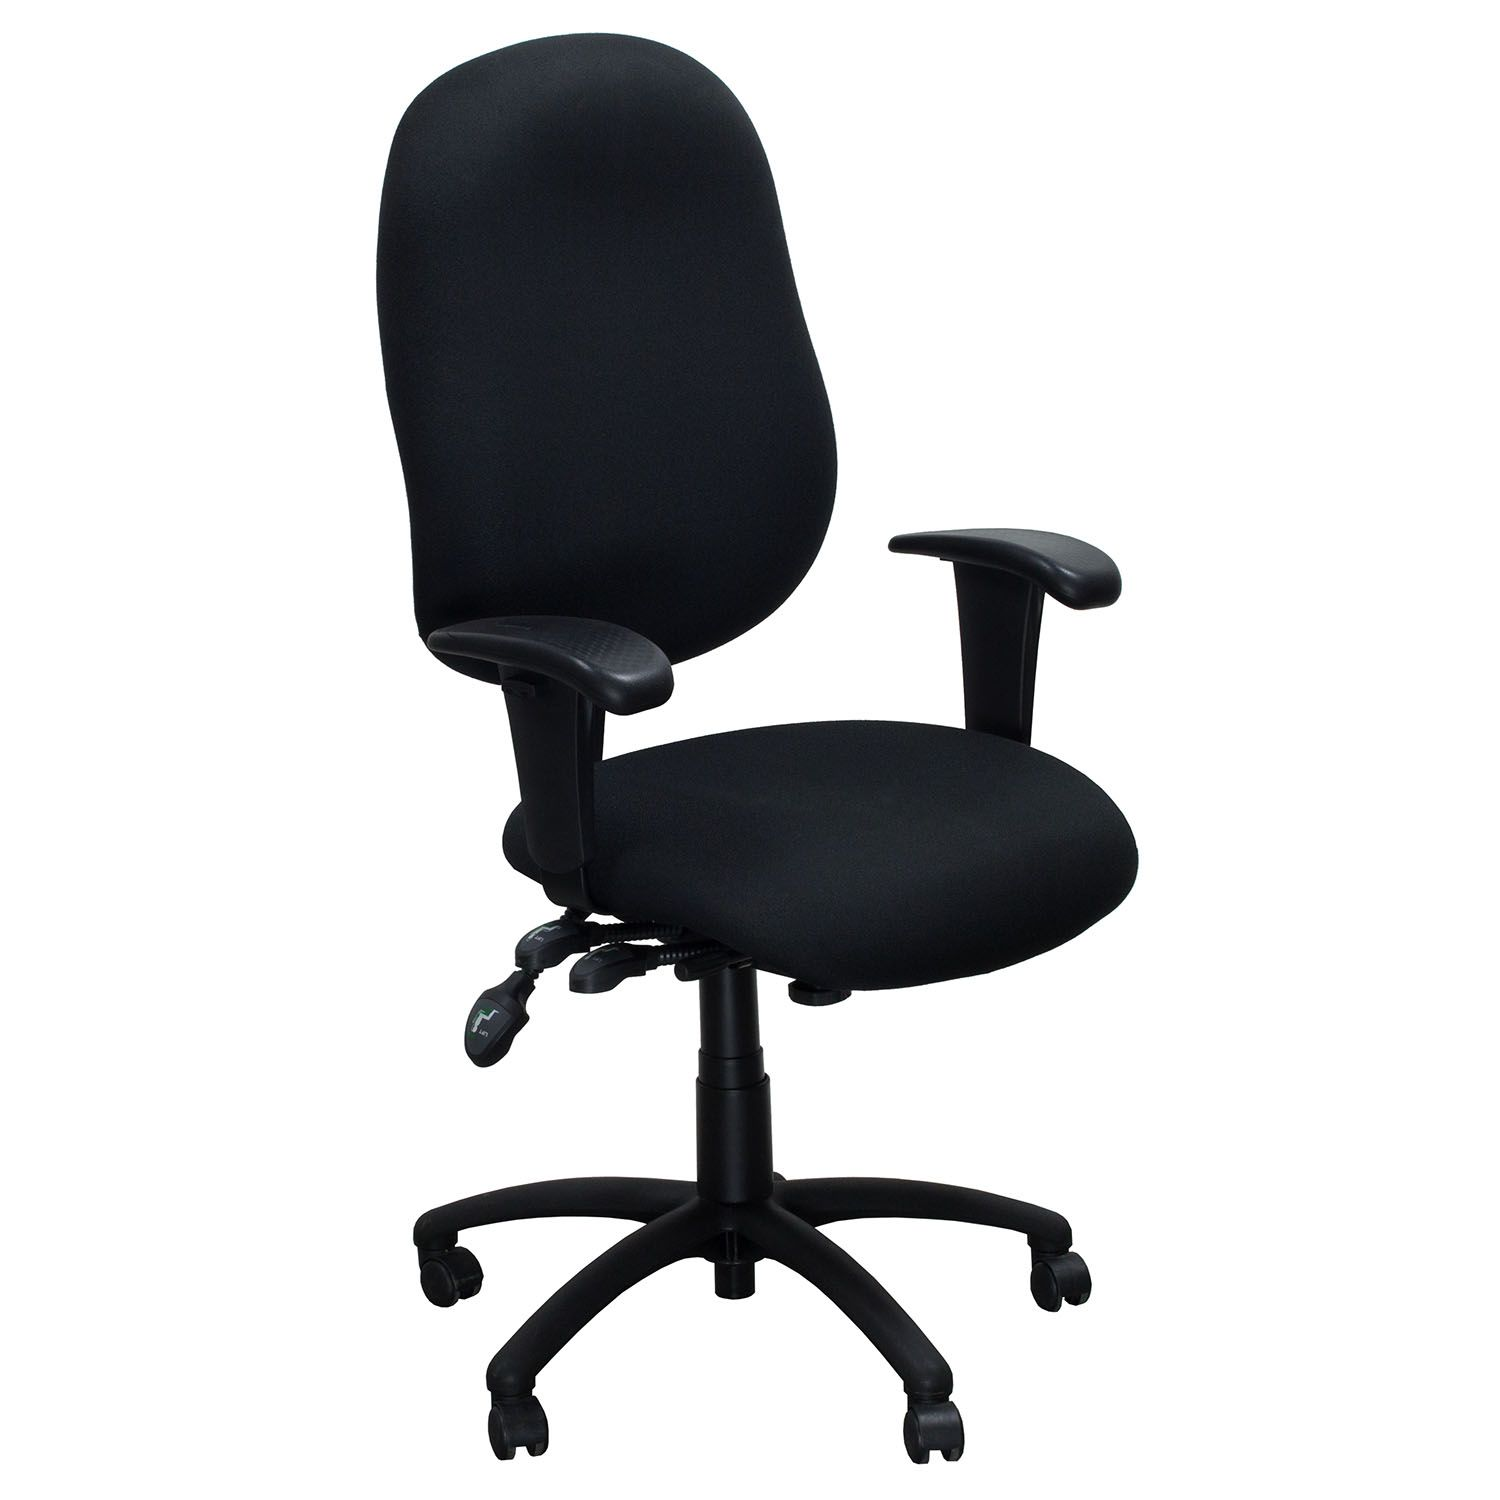 9 to 5 Seating Used High Back Task Chair Black NOLstore